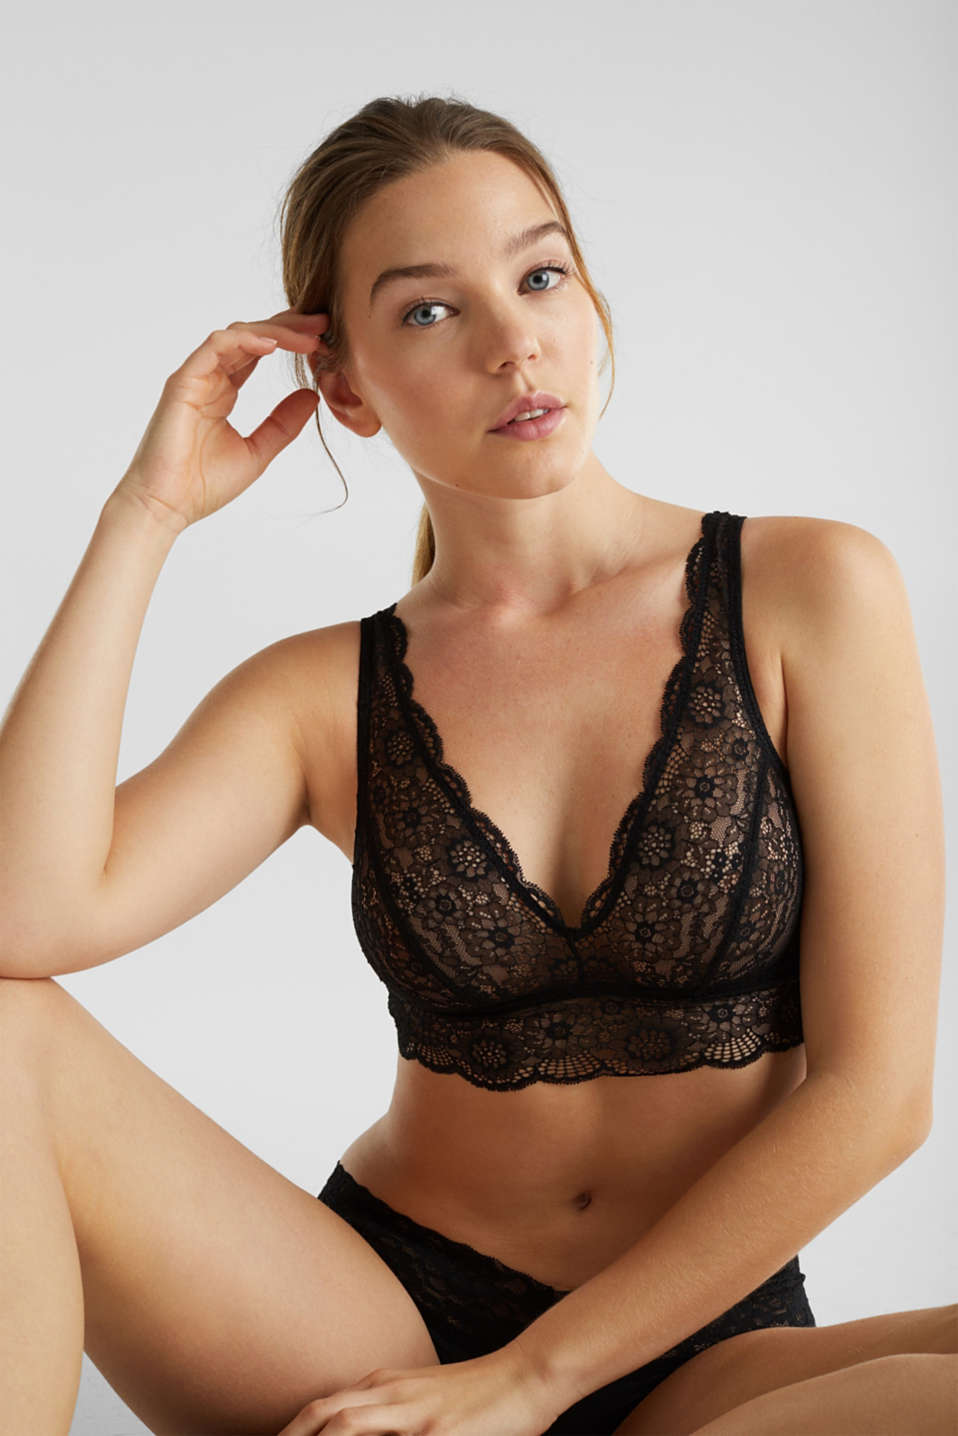 Esprit - 2-in-1: bra and crop top made of microfibre/lace